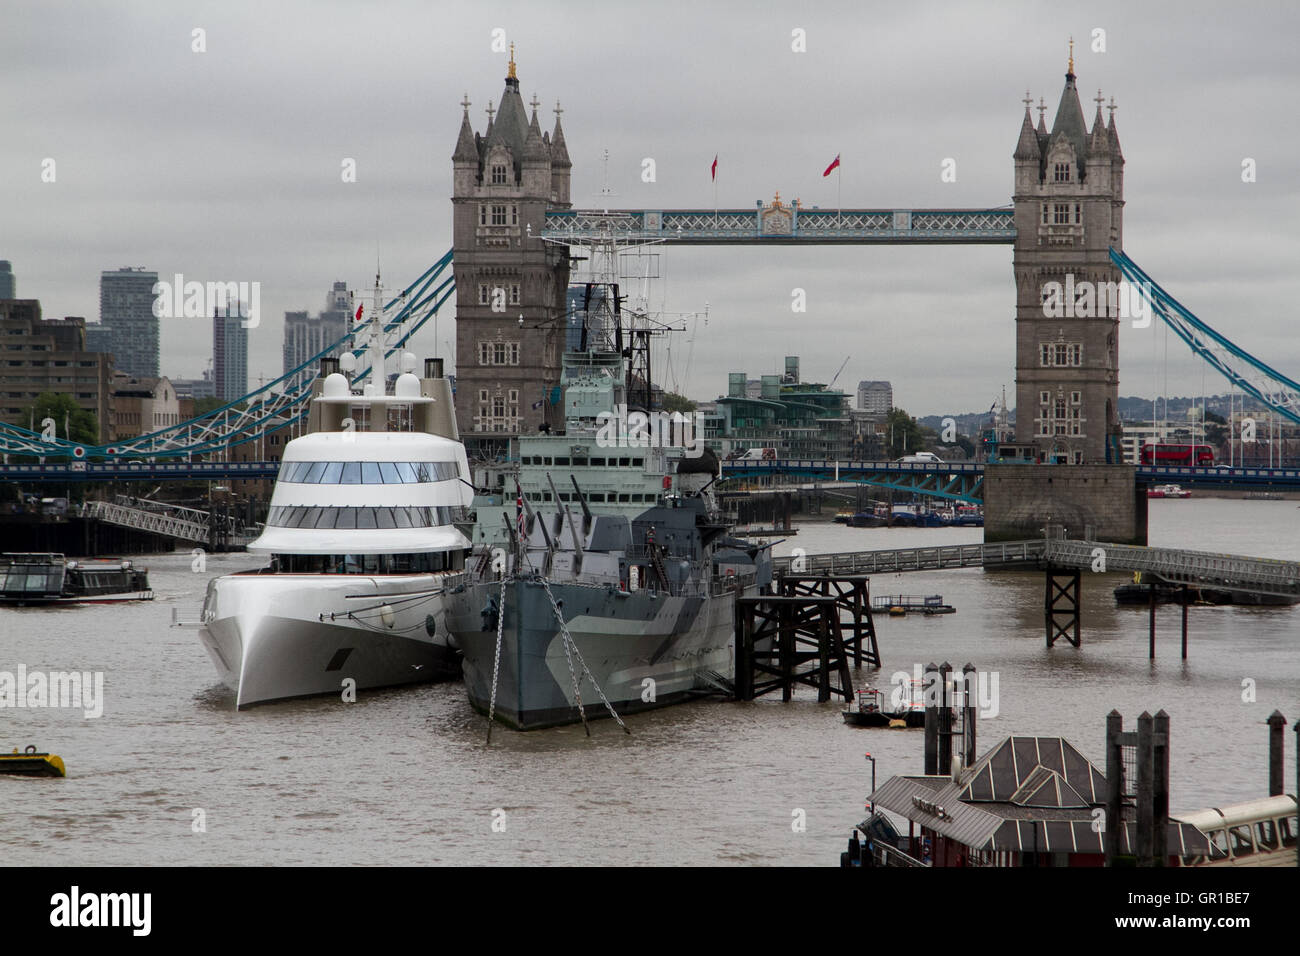 A 300 million dollar superyacht by  Russian billionaire Andrey Melnichenko sailed up the River Thames  to moor alongside - Stock Image